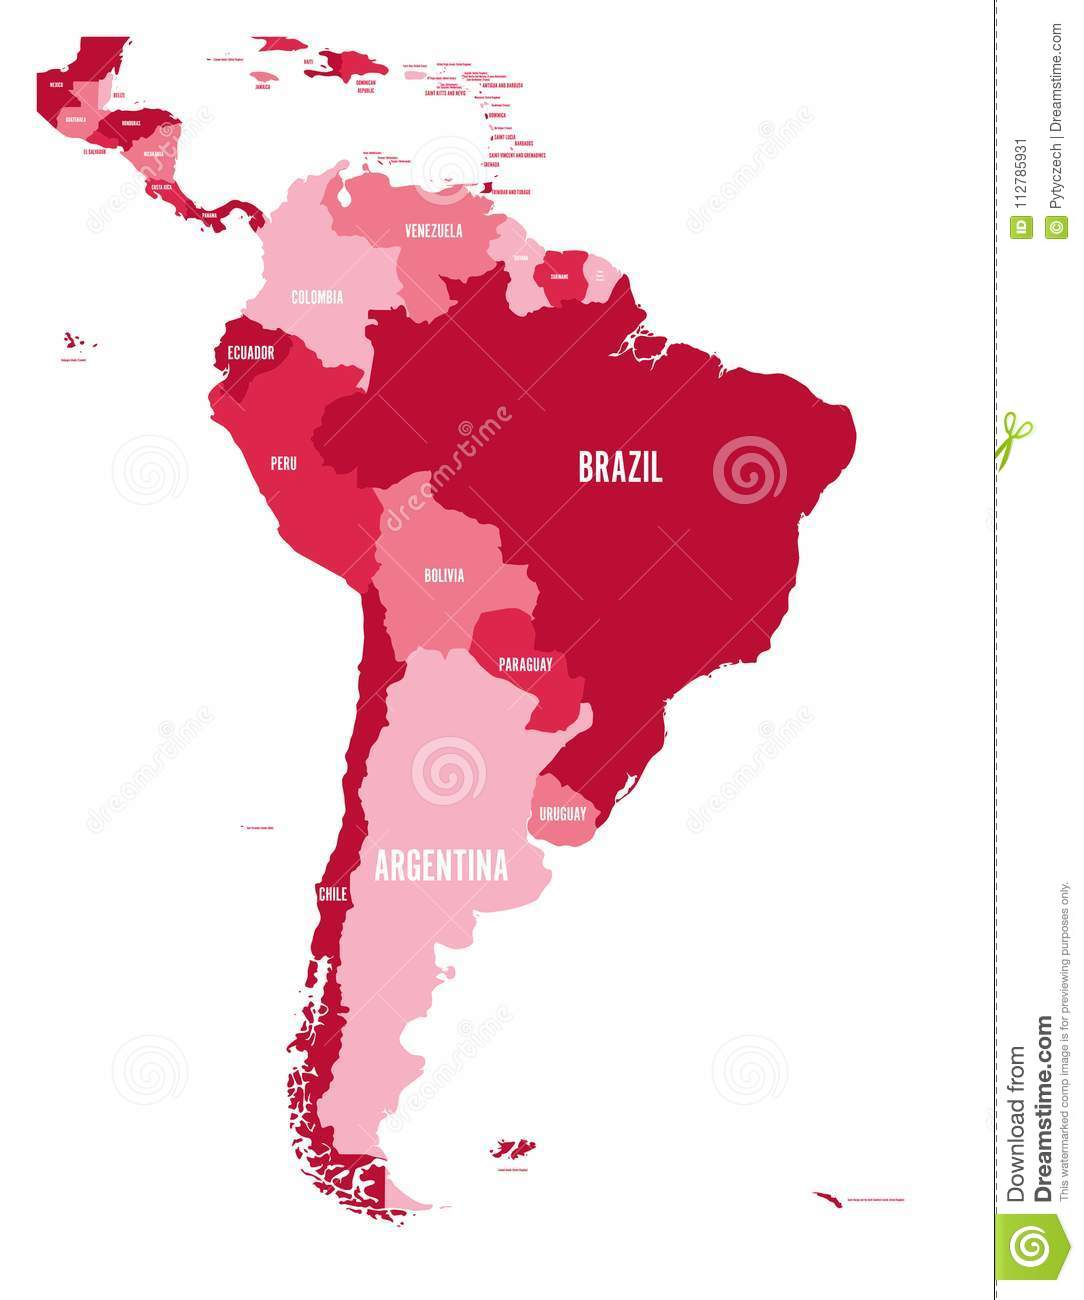 Political map of south america simple flat vector map with country political map of south america simple flat vector map with country name labels in four shades of maroon gumiabroncs Gallery